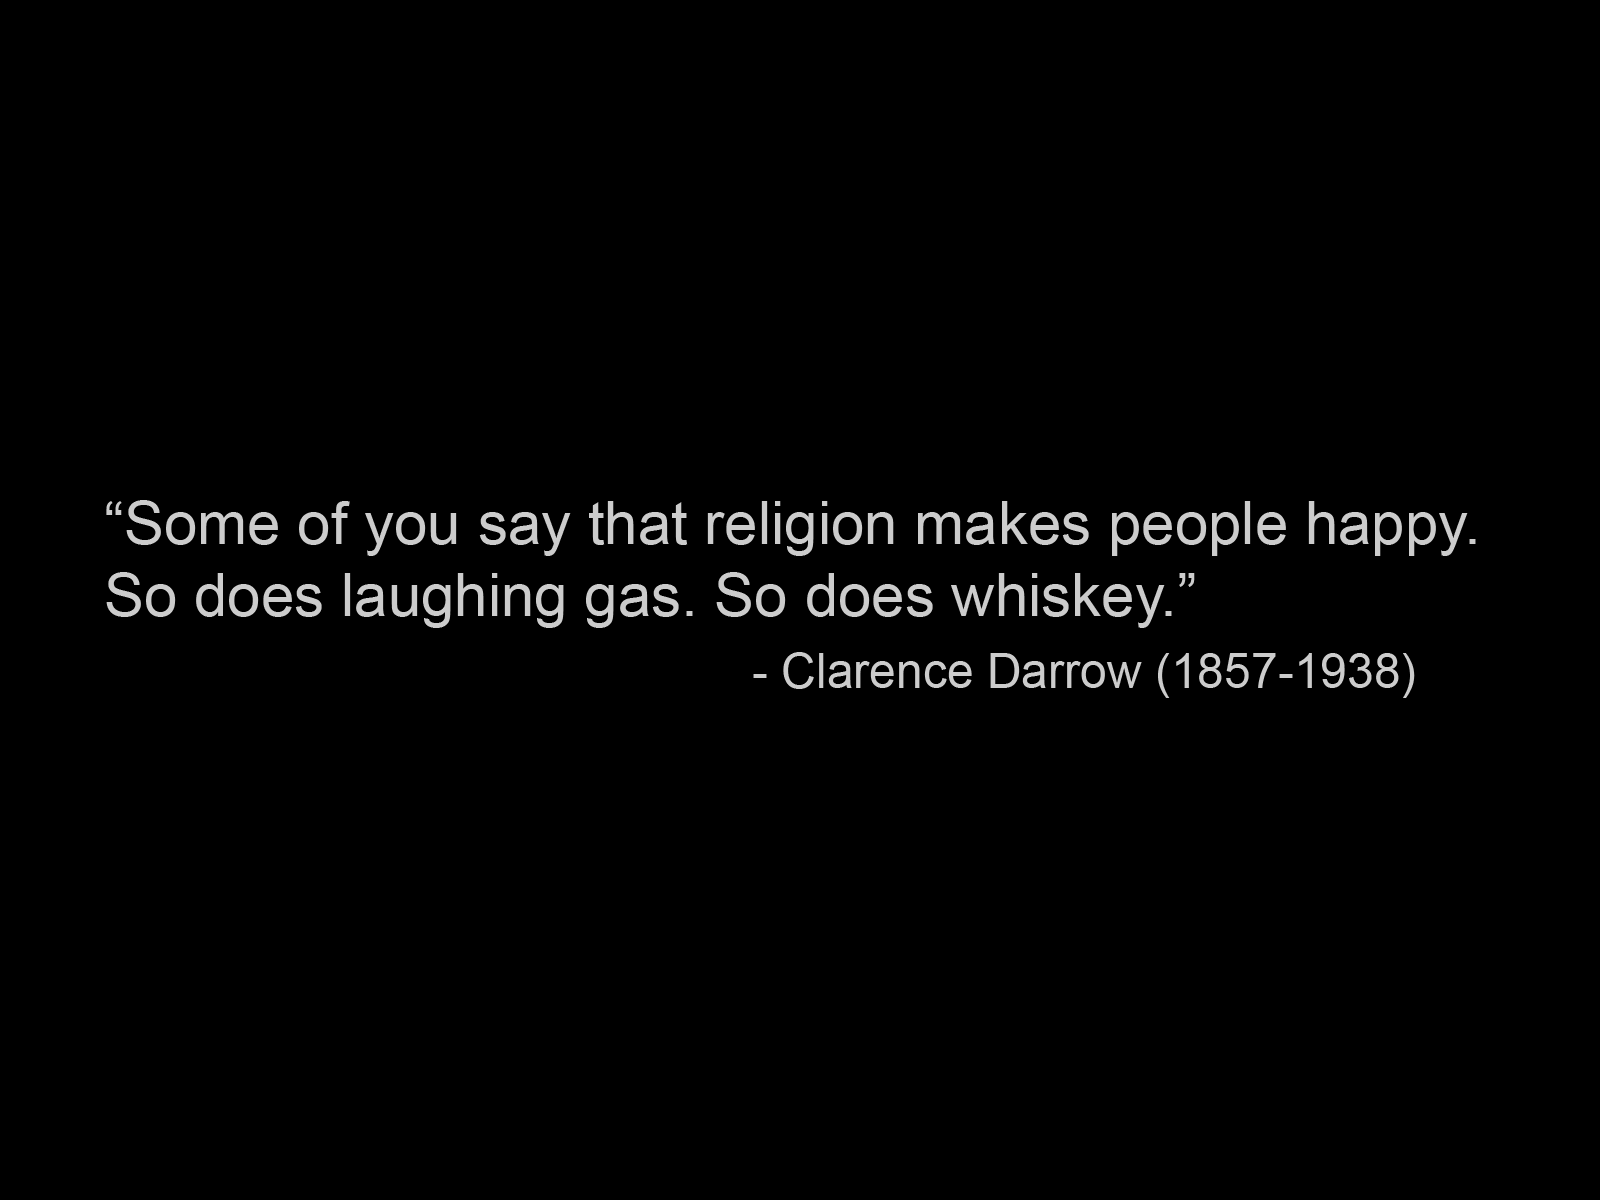 some-of-you-say-that-religion-makes-people-happy-so-does-laughing-gas-so-dose-whiskey-clarence-darrow